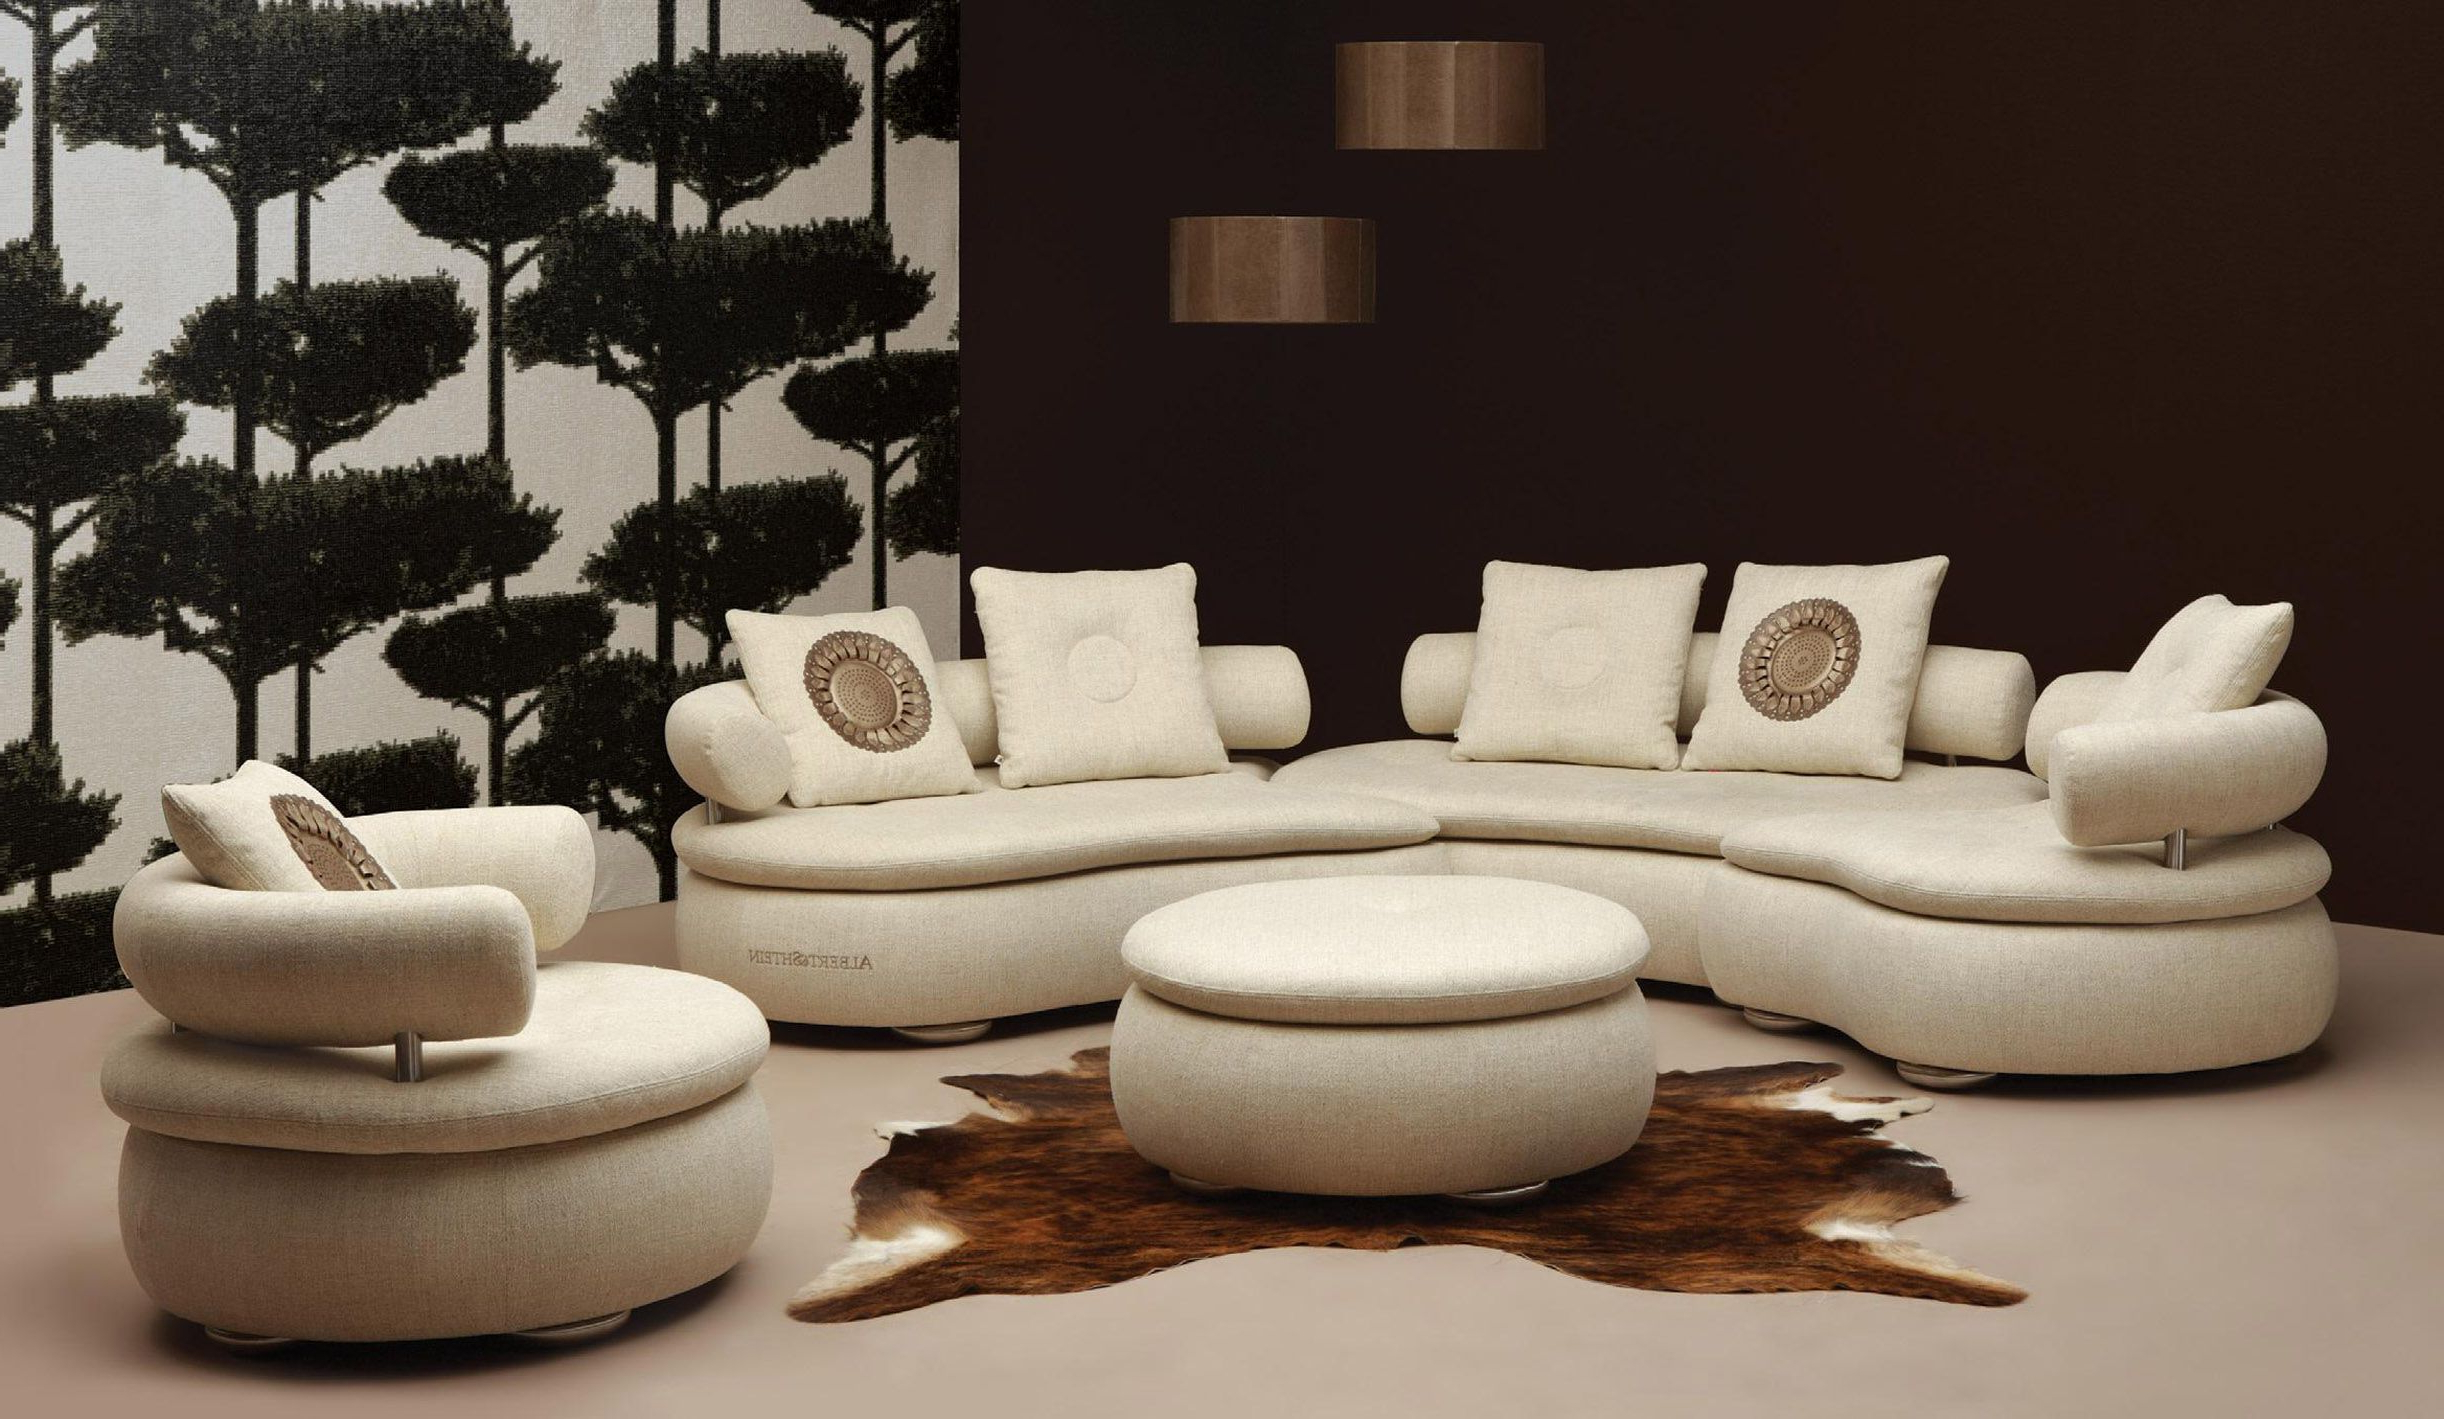 Widely Used Living Room : Round Sofa Chair Semi Circle Couch Round Sectional Regarding Round Sofa Chair Living Room Furniture (View 20 of 20)